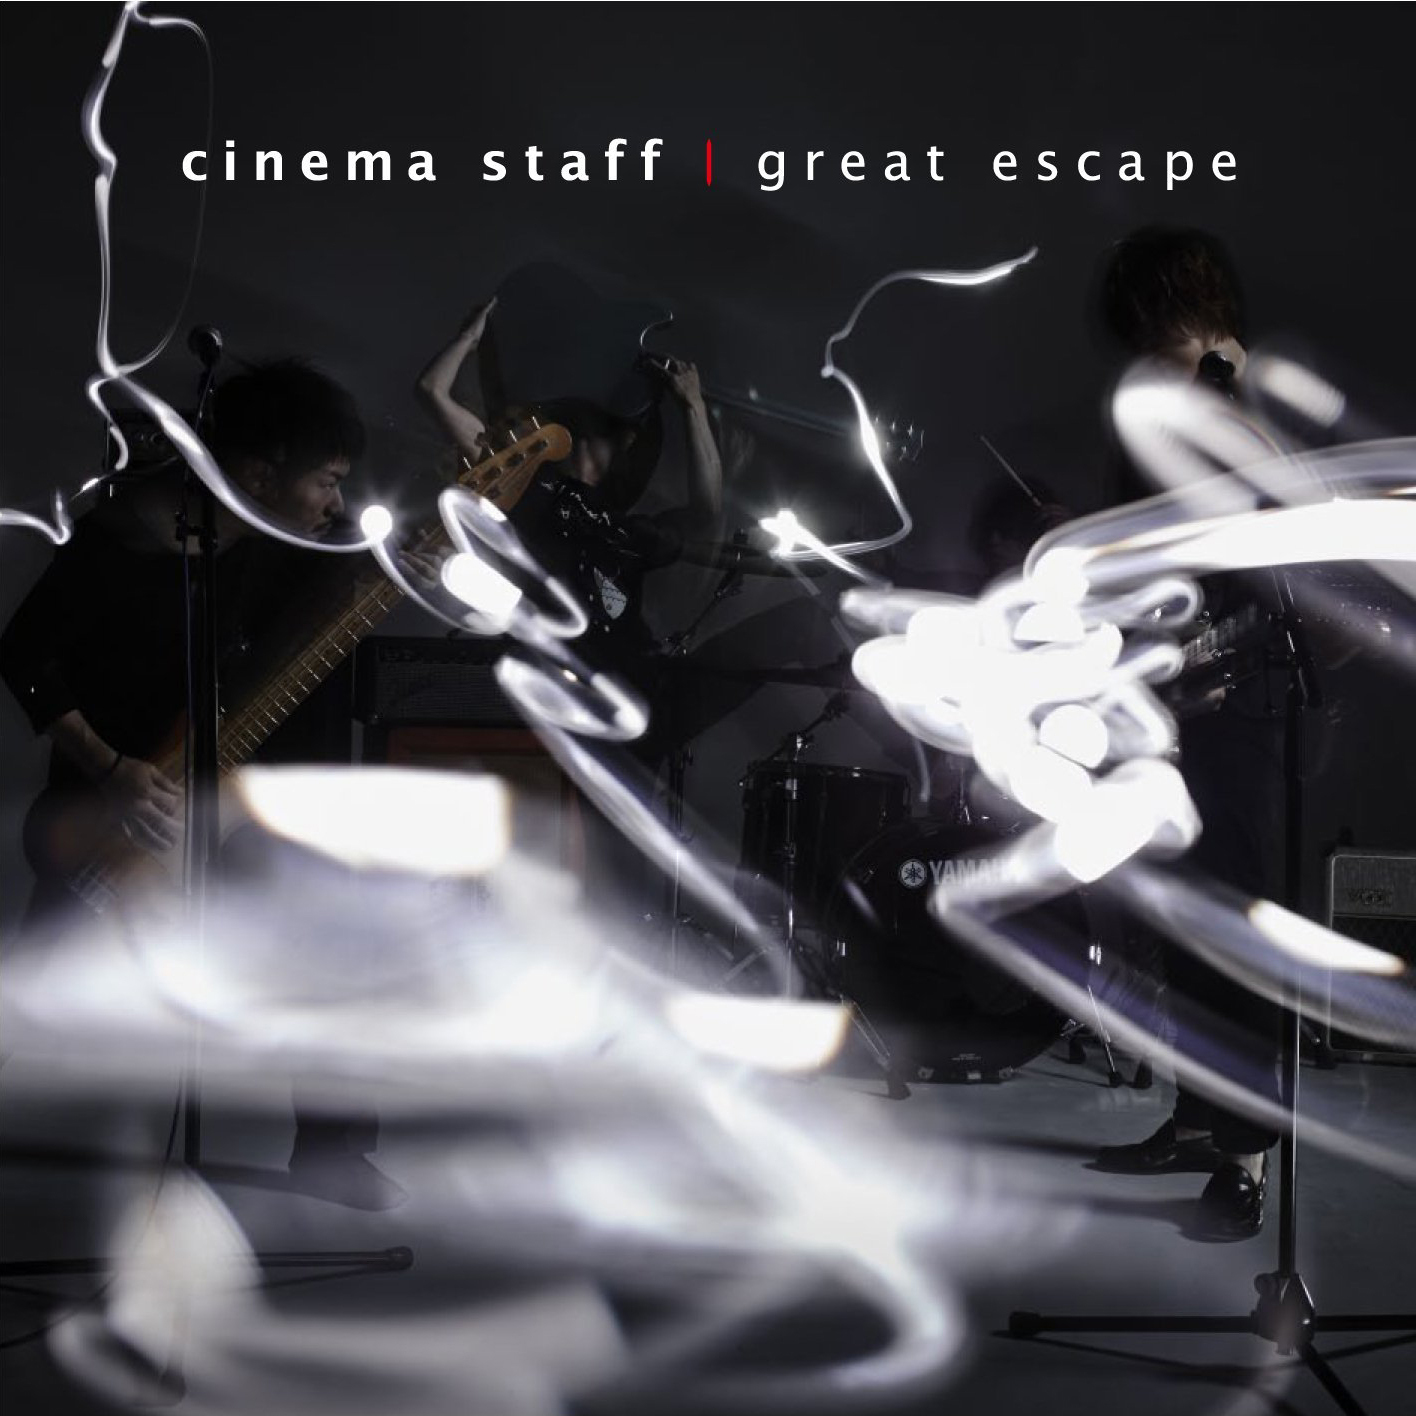 cinema staff great escapeジャケット画像